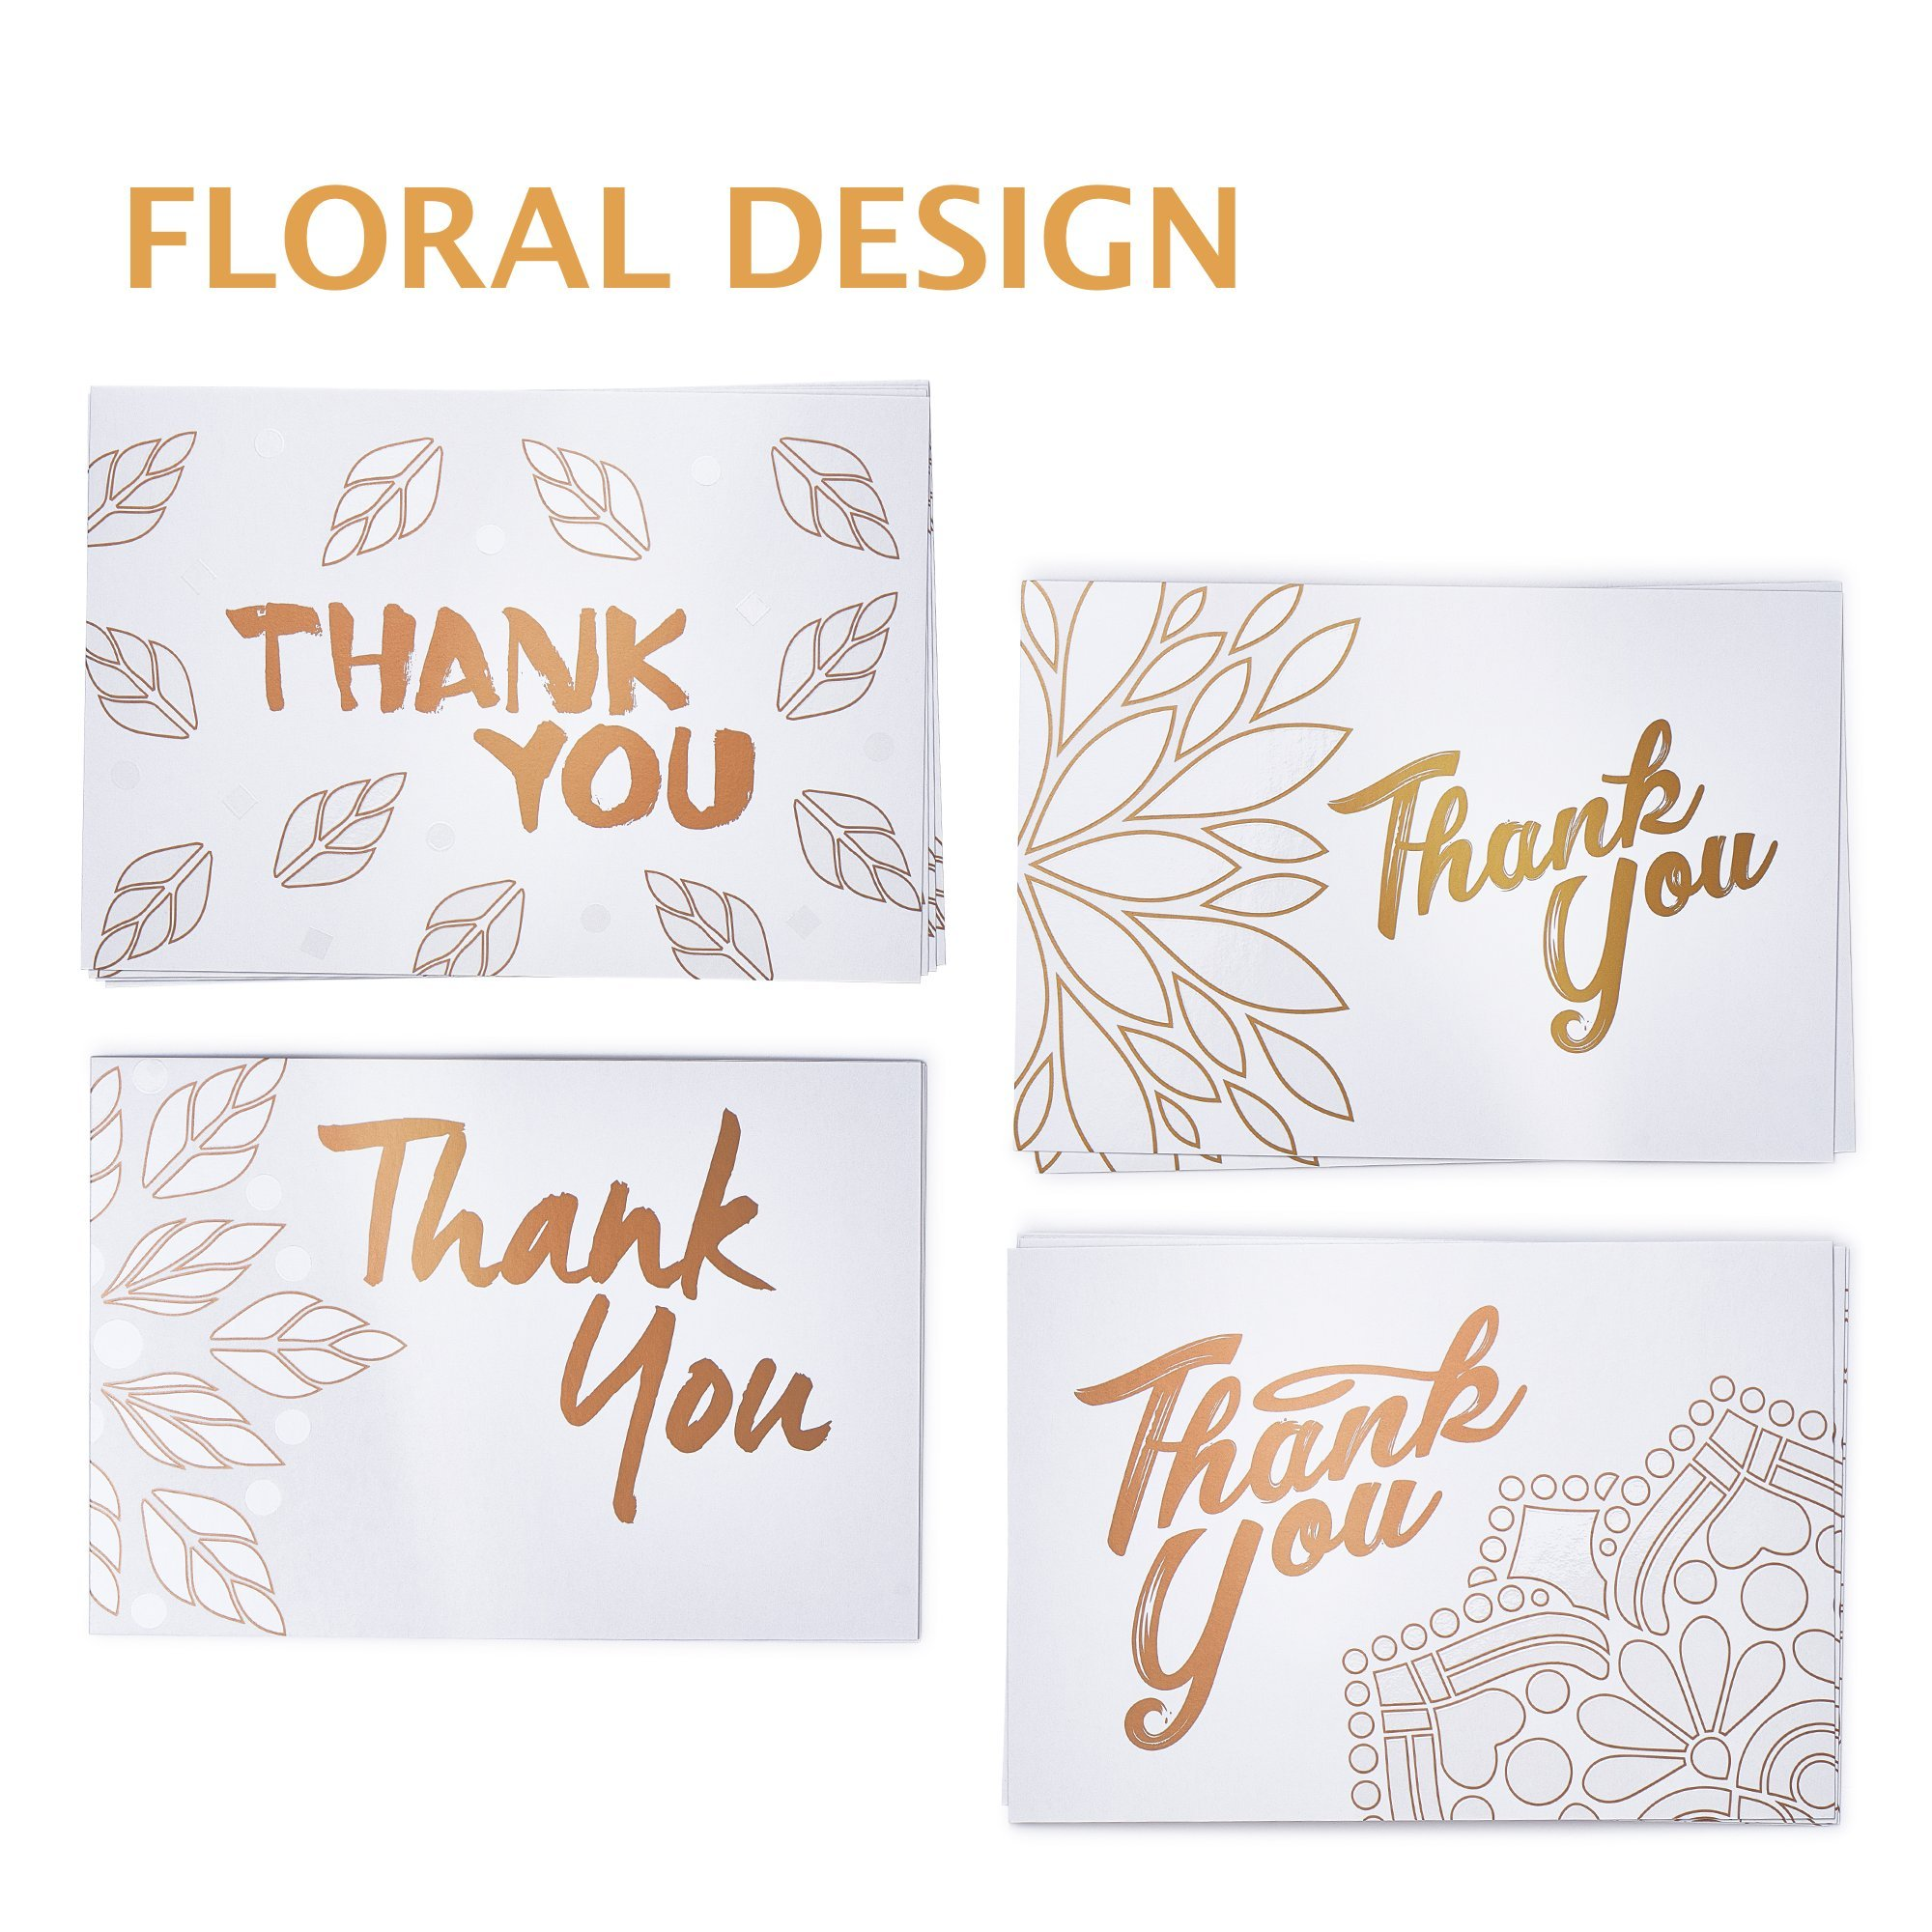 Thank You Cards Box Set - 40 Greeting Cards with Kraft Envelopes - Rose Gold/White Floral Design Note Cards - Best Thank You Notes for boy/girl Baby Shower, Men, Bridal, Wedding, Kids, Graduation